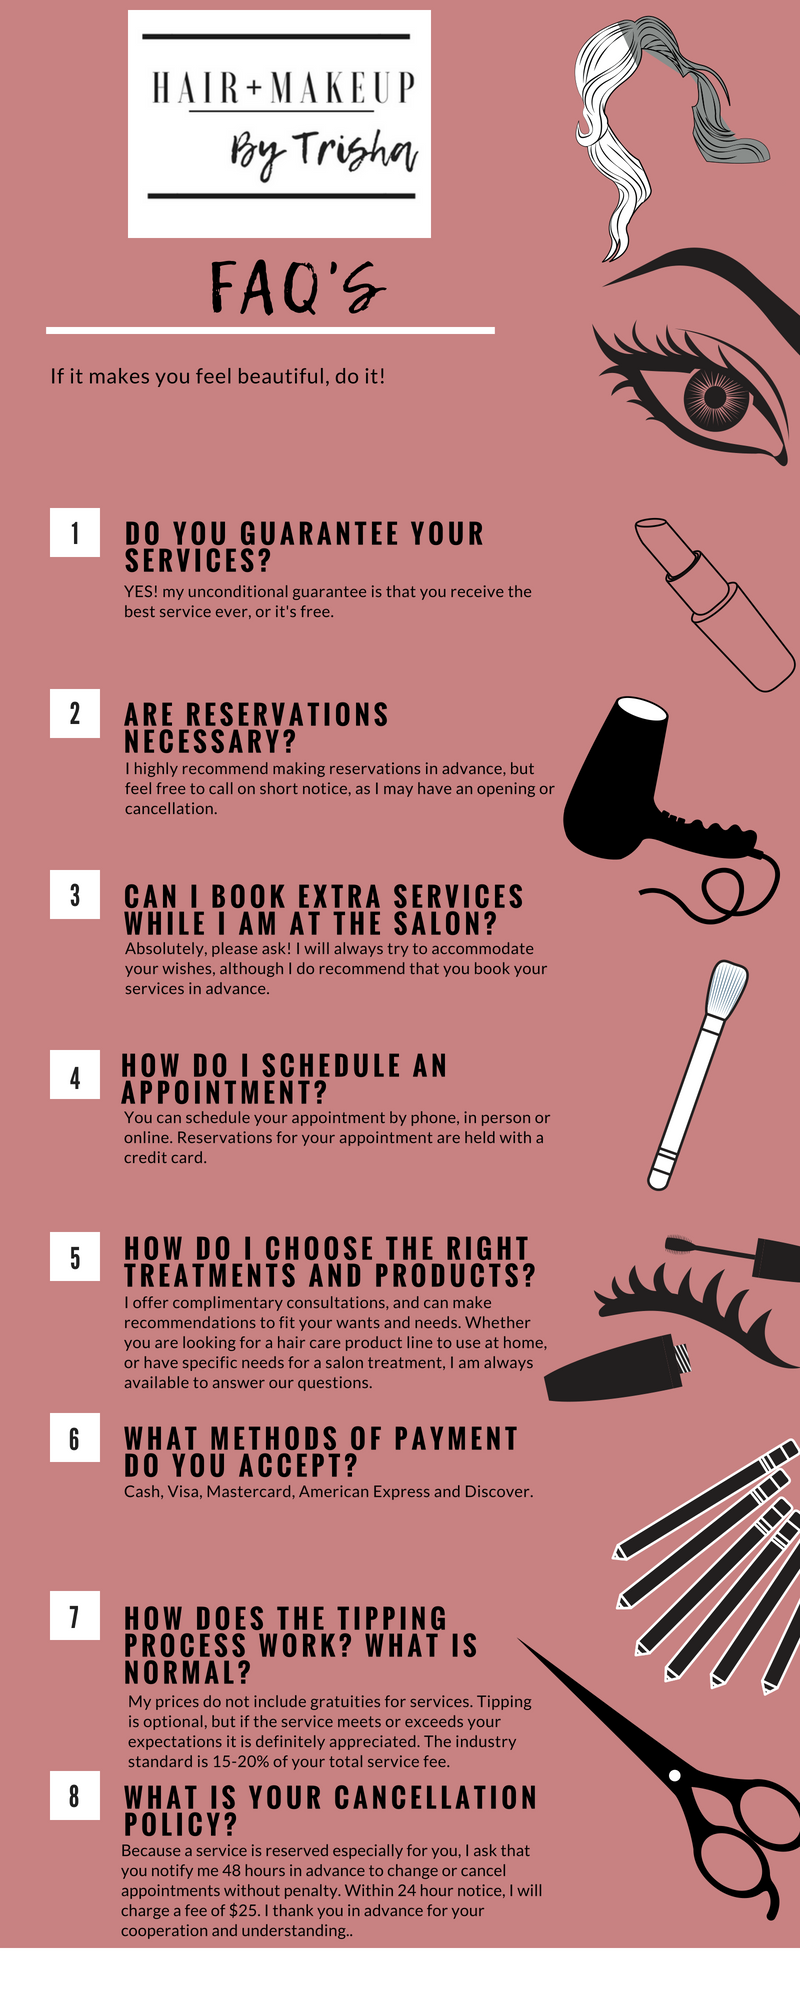 You've decided on your hair and makeup... now what? Let me answer your questions and tell you how to get started! - Don't see your question here, feel free to send me an email or give me a call!